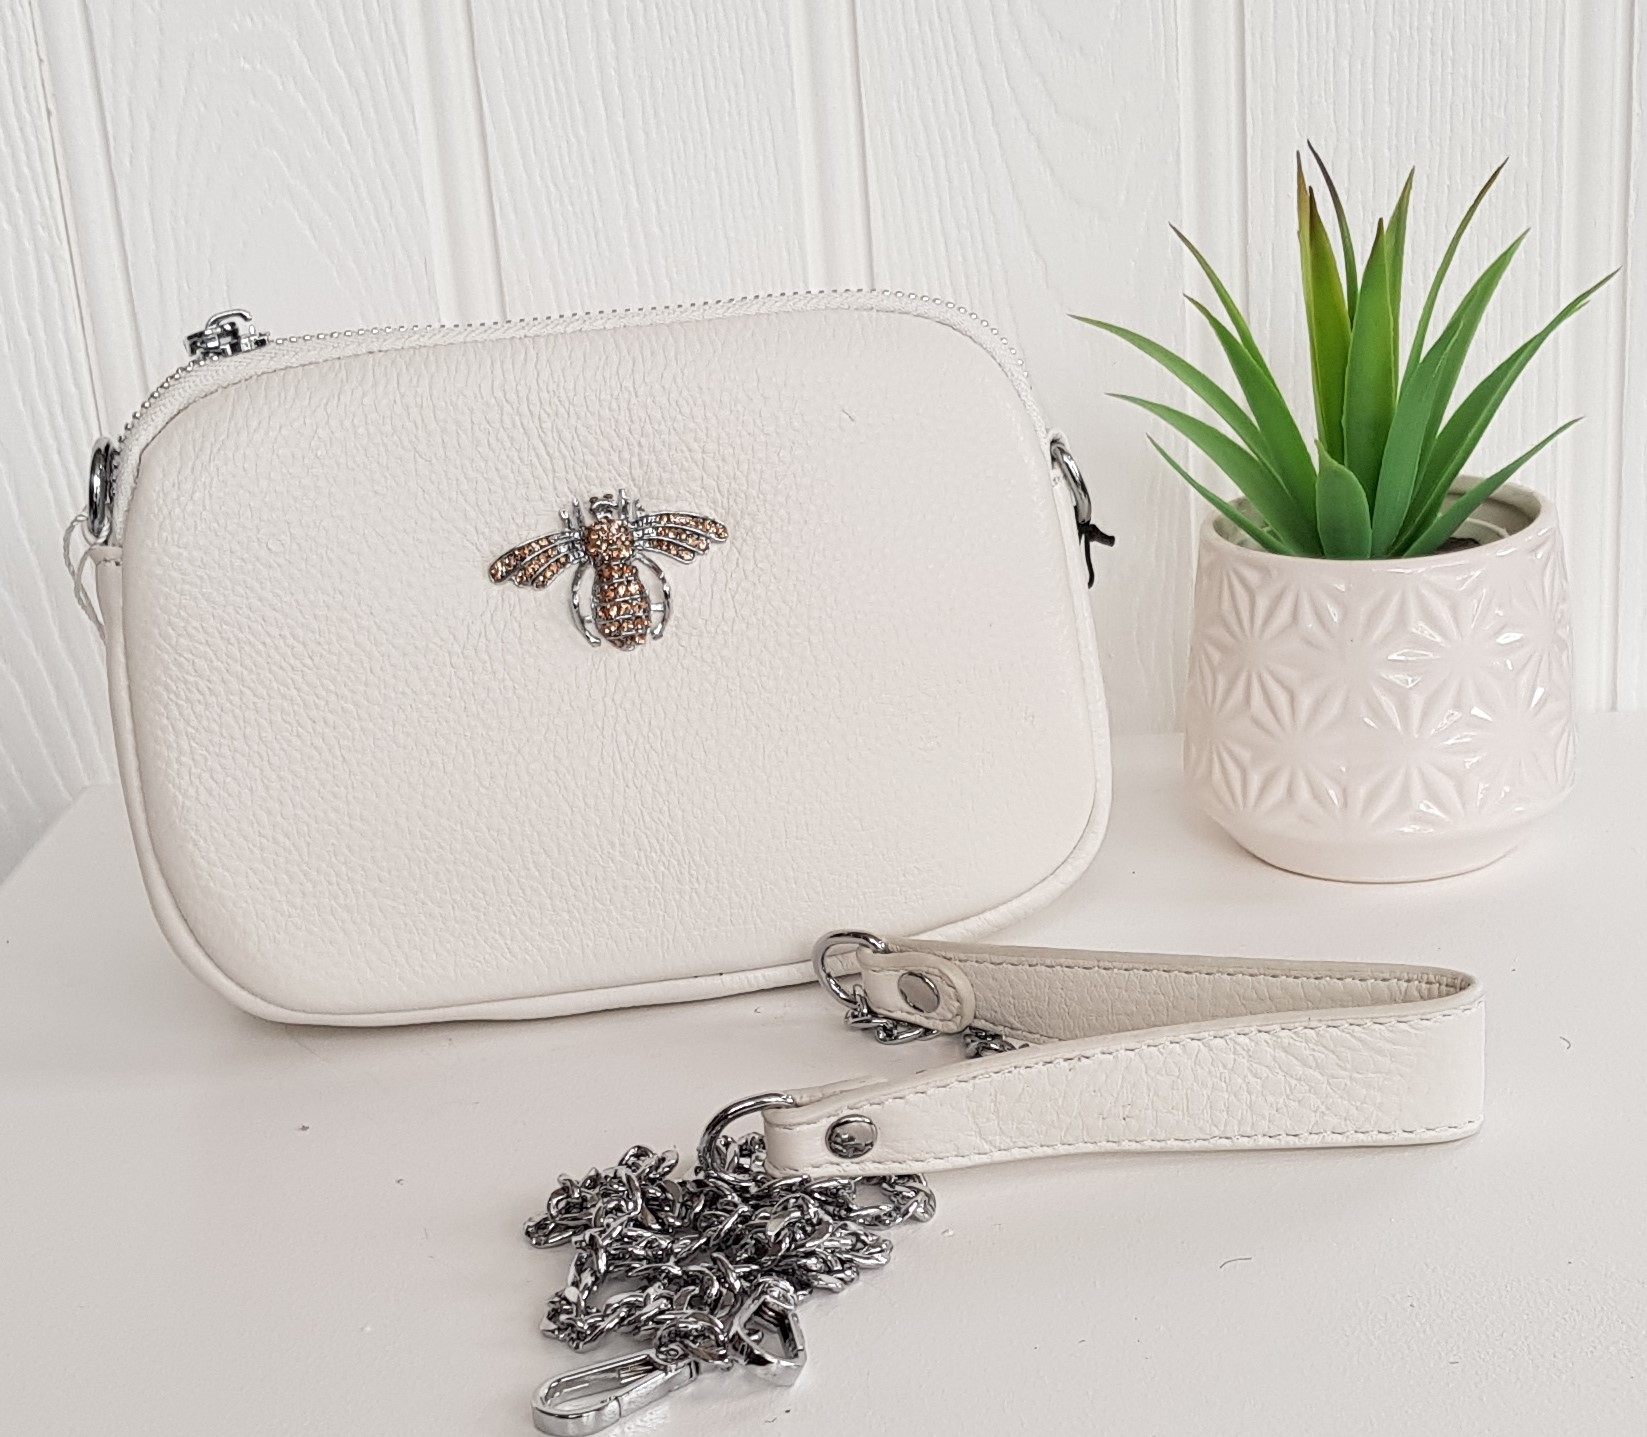 Bag - Cream (Off White) Leather Bag With Crystal Bee